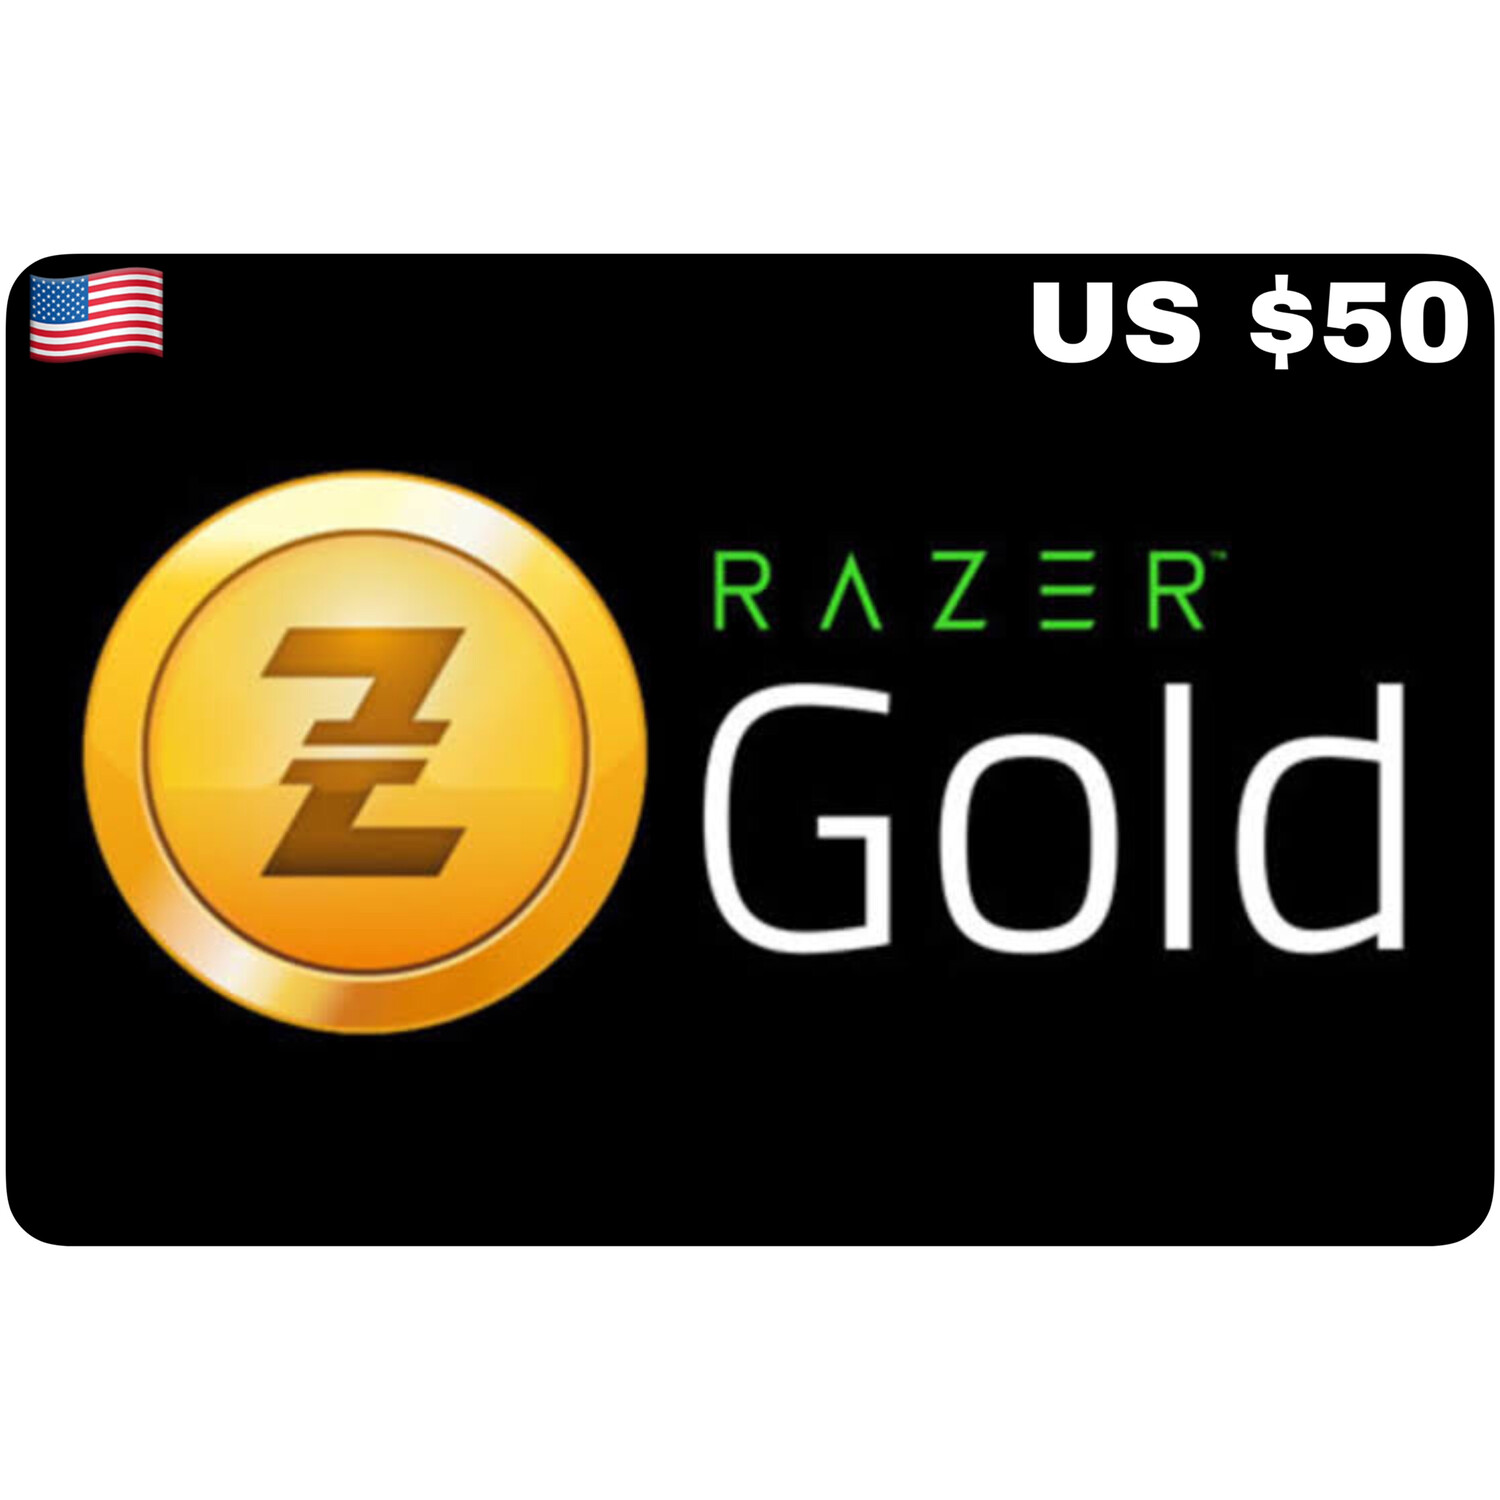 Razer Gold Pin US $50